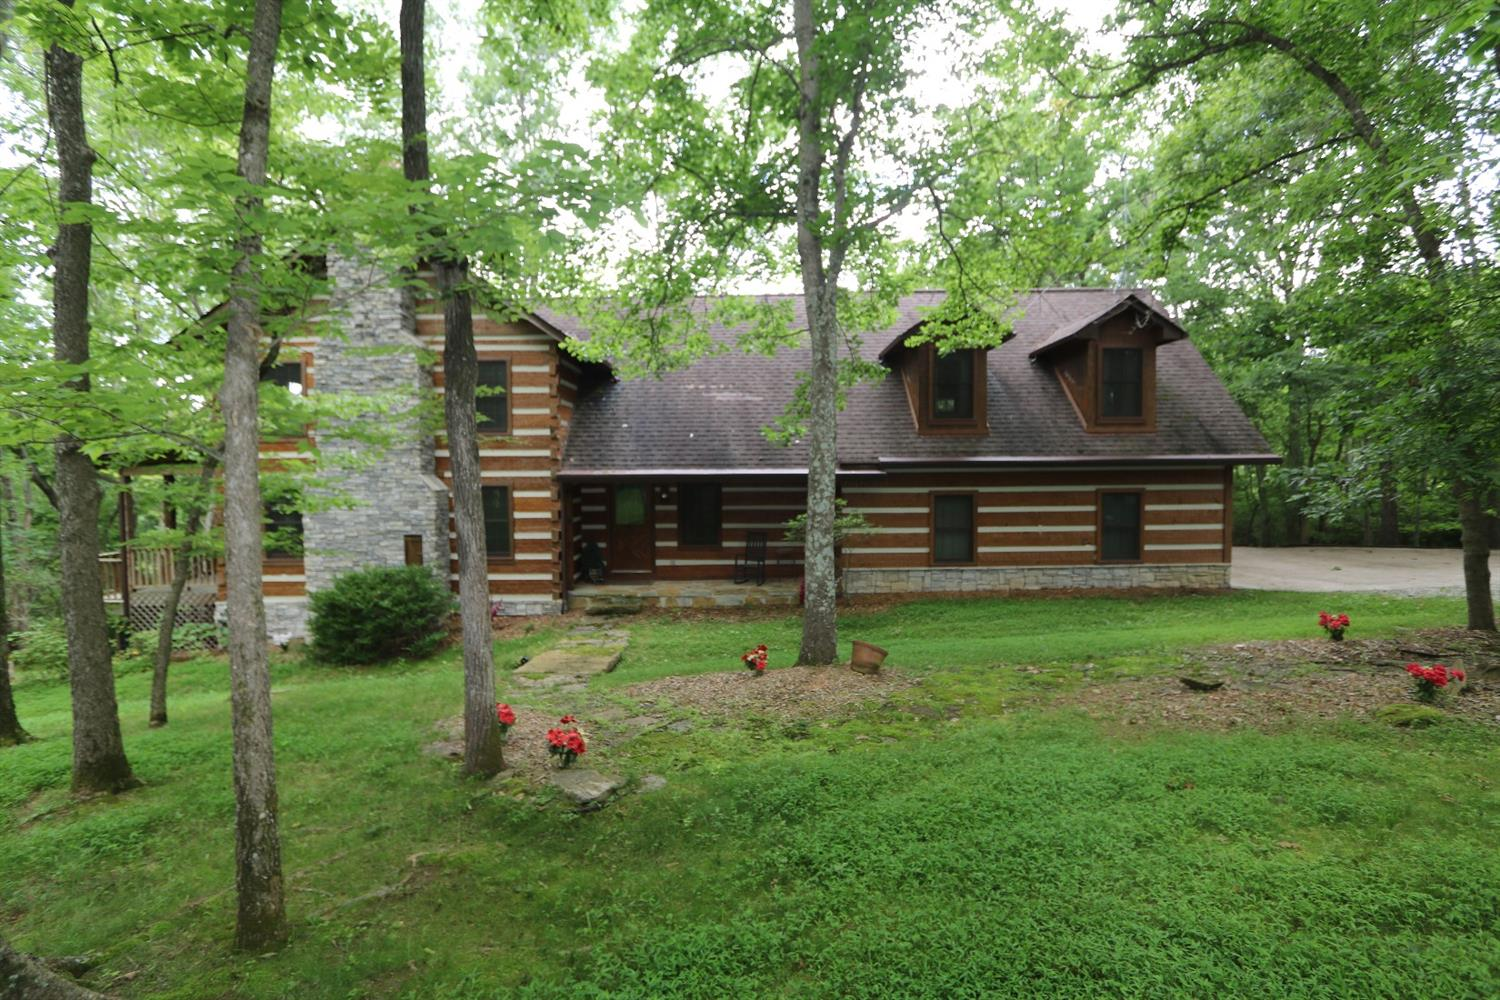 Home For Sale at 4105 Kentucky River Pkwy, Lexington, KY 40515